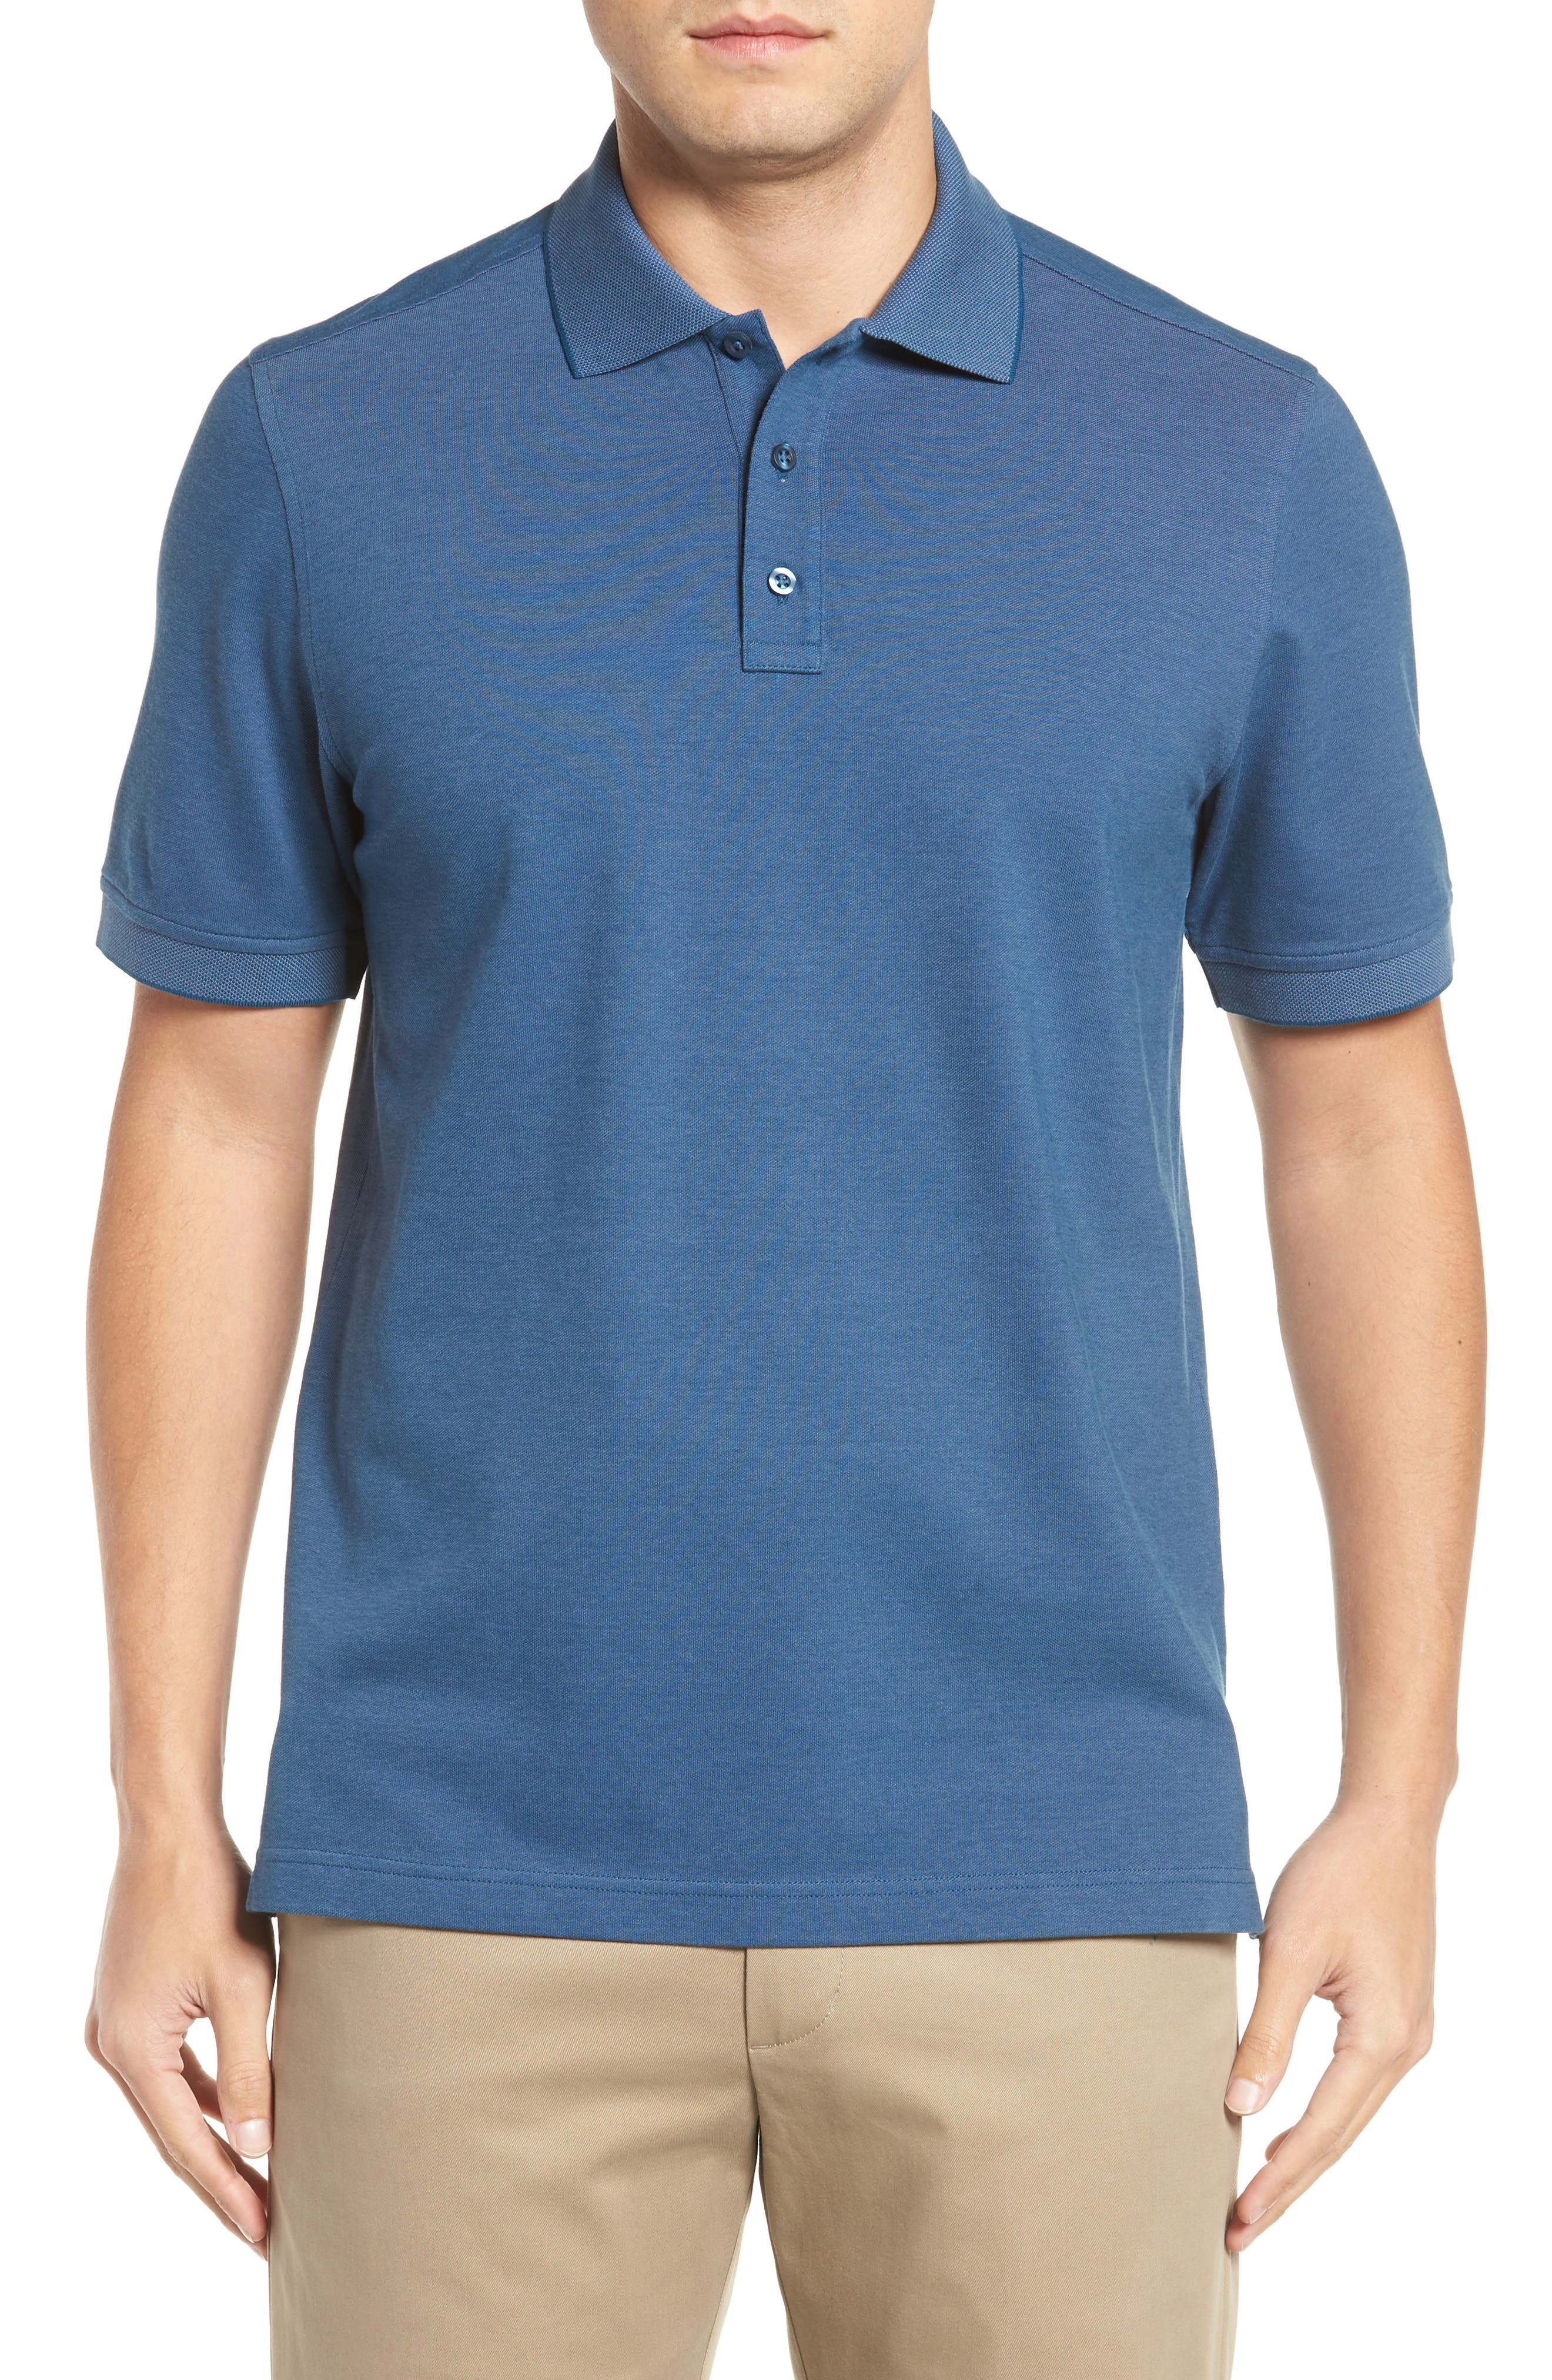 Alternate Image 1 Selected - Nordstrom Men's Shop 'Classic' Regular Fit Oxford Piqué Polo (Big)